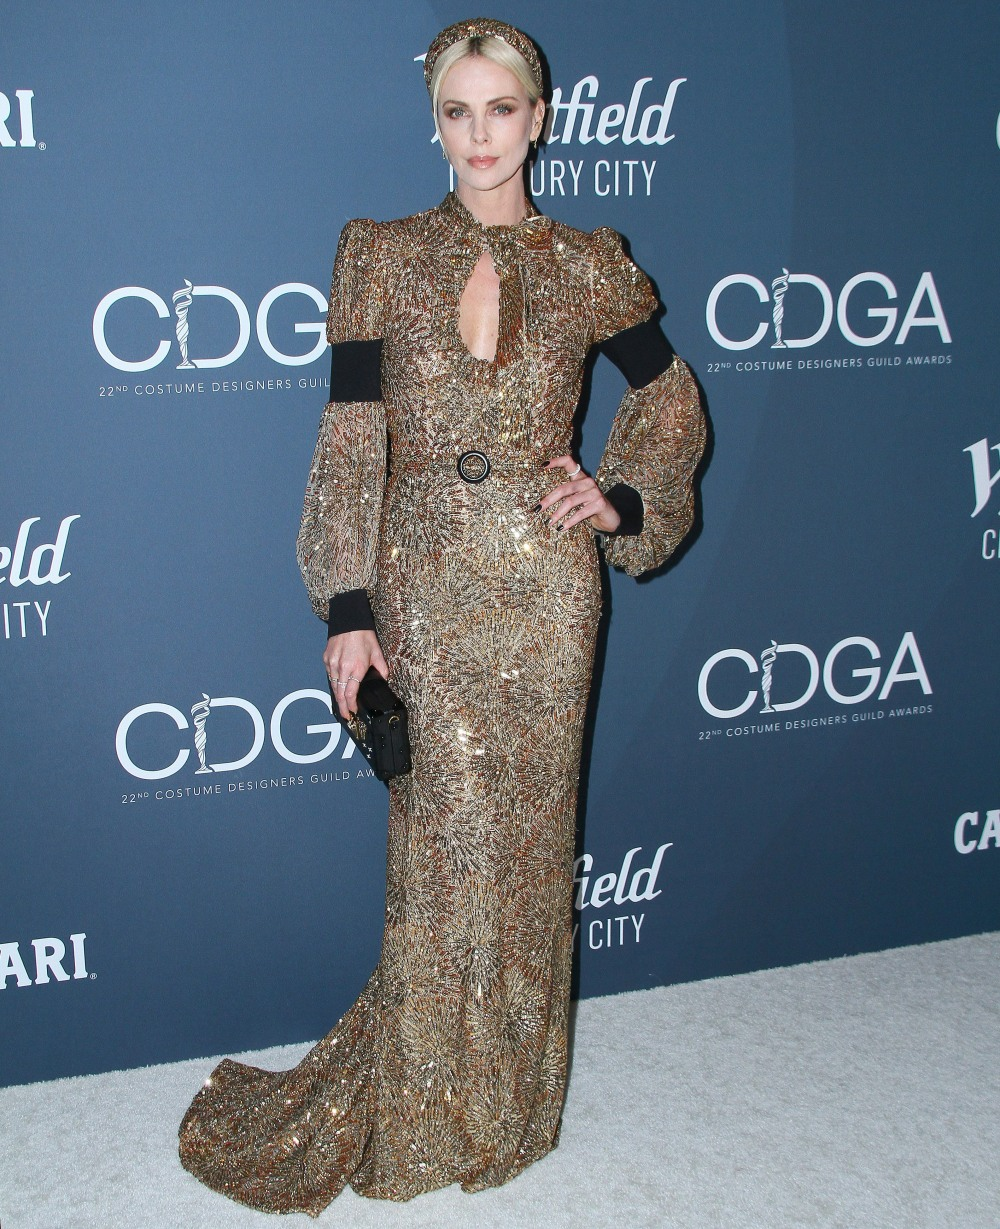 Charlize Theron attends  the 22nd Costume Designers Guild Awards in Los Angeles